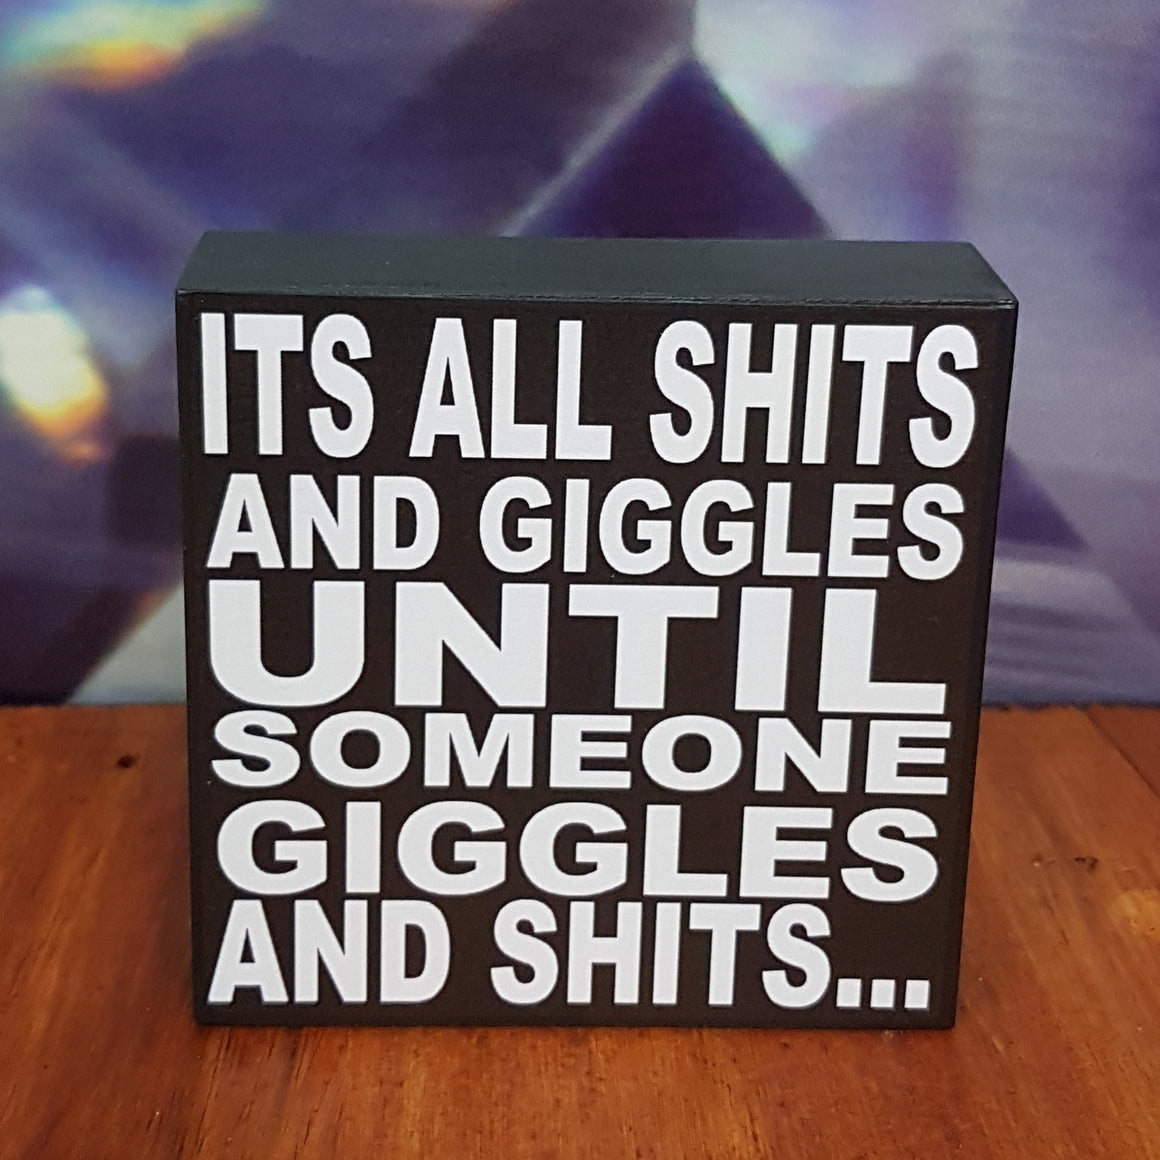 Its all shits and giggles Block - 9x9cm